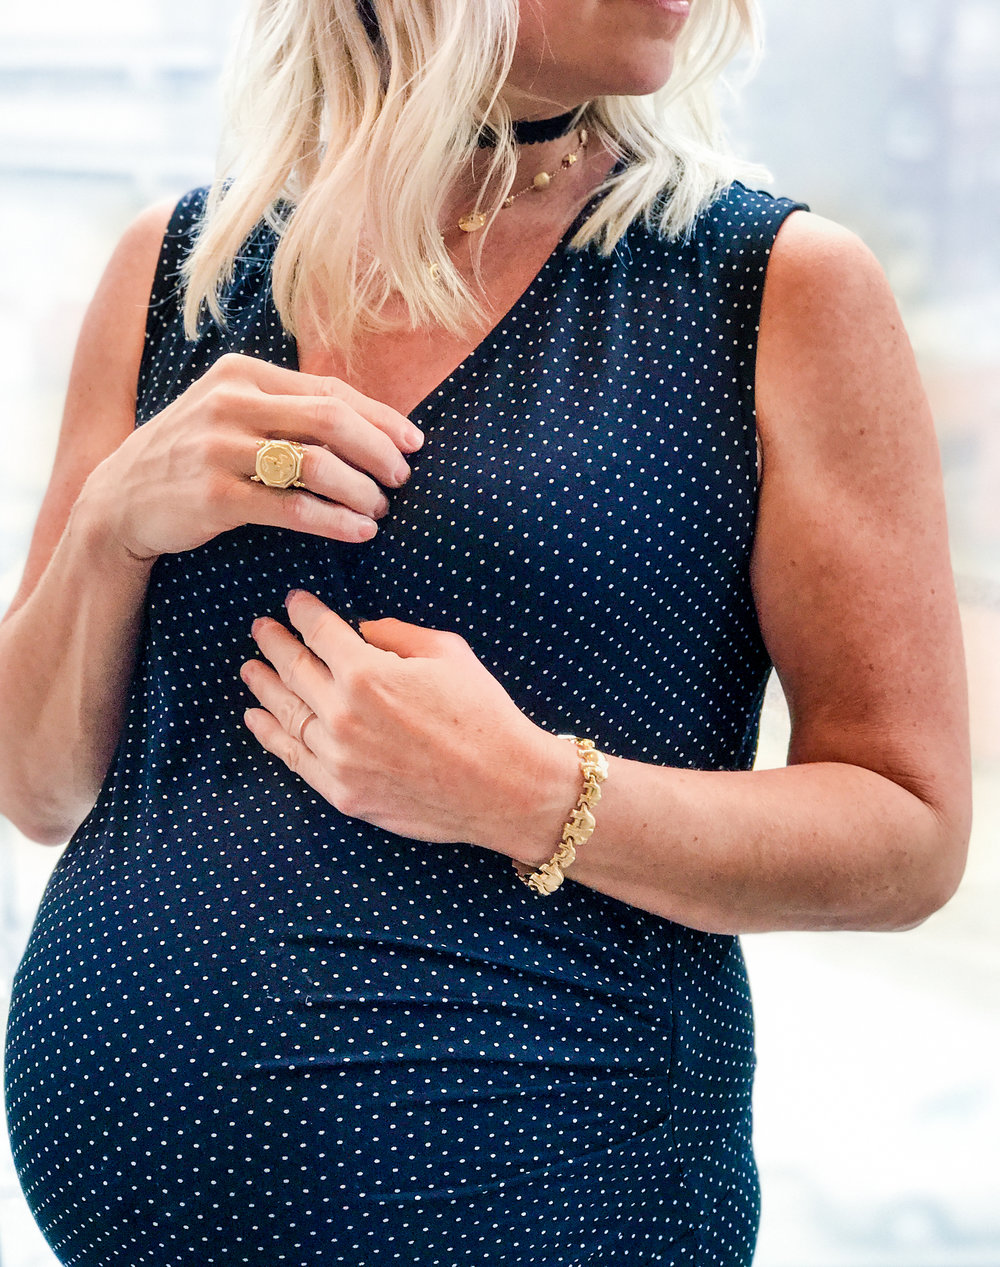 comfy pregnancy chic with isabella oliver - gold west vintage, lynn armstrong, vintage jewelry, mom style, mom fashion, lifestyle blog